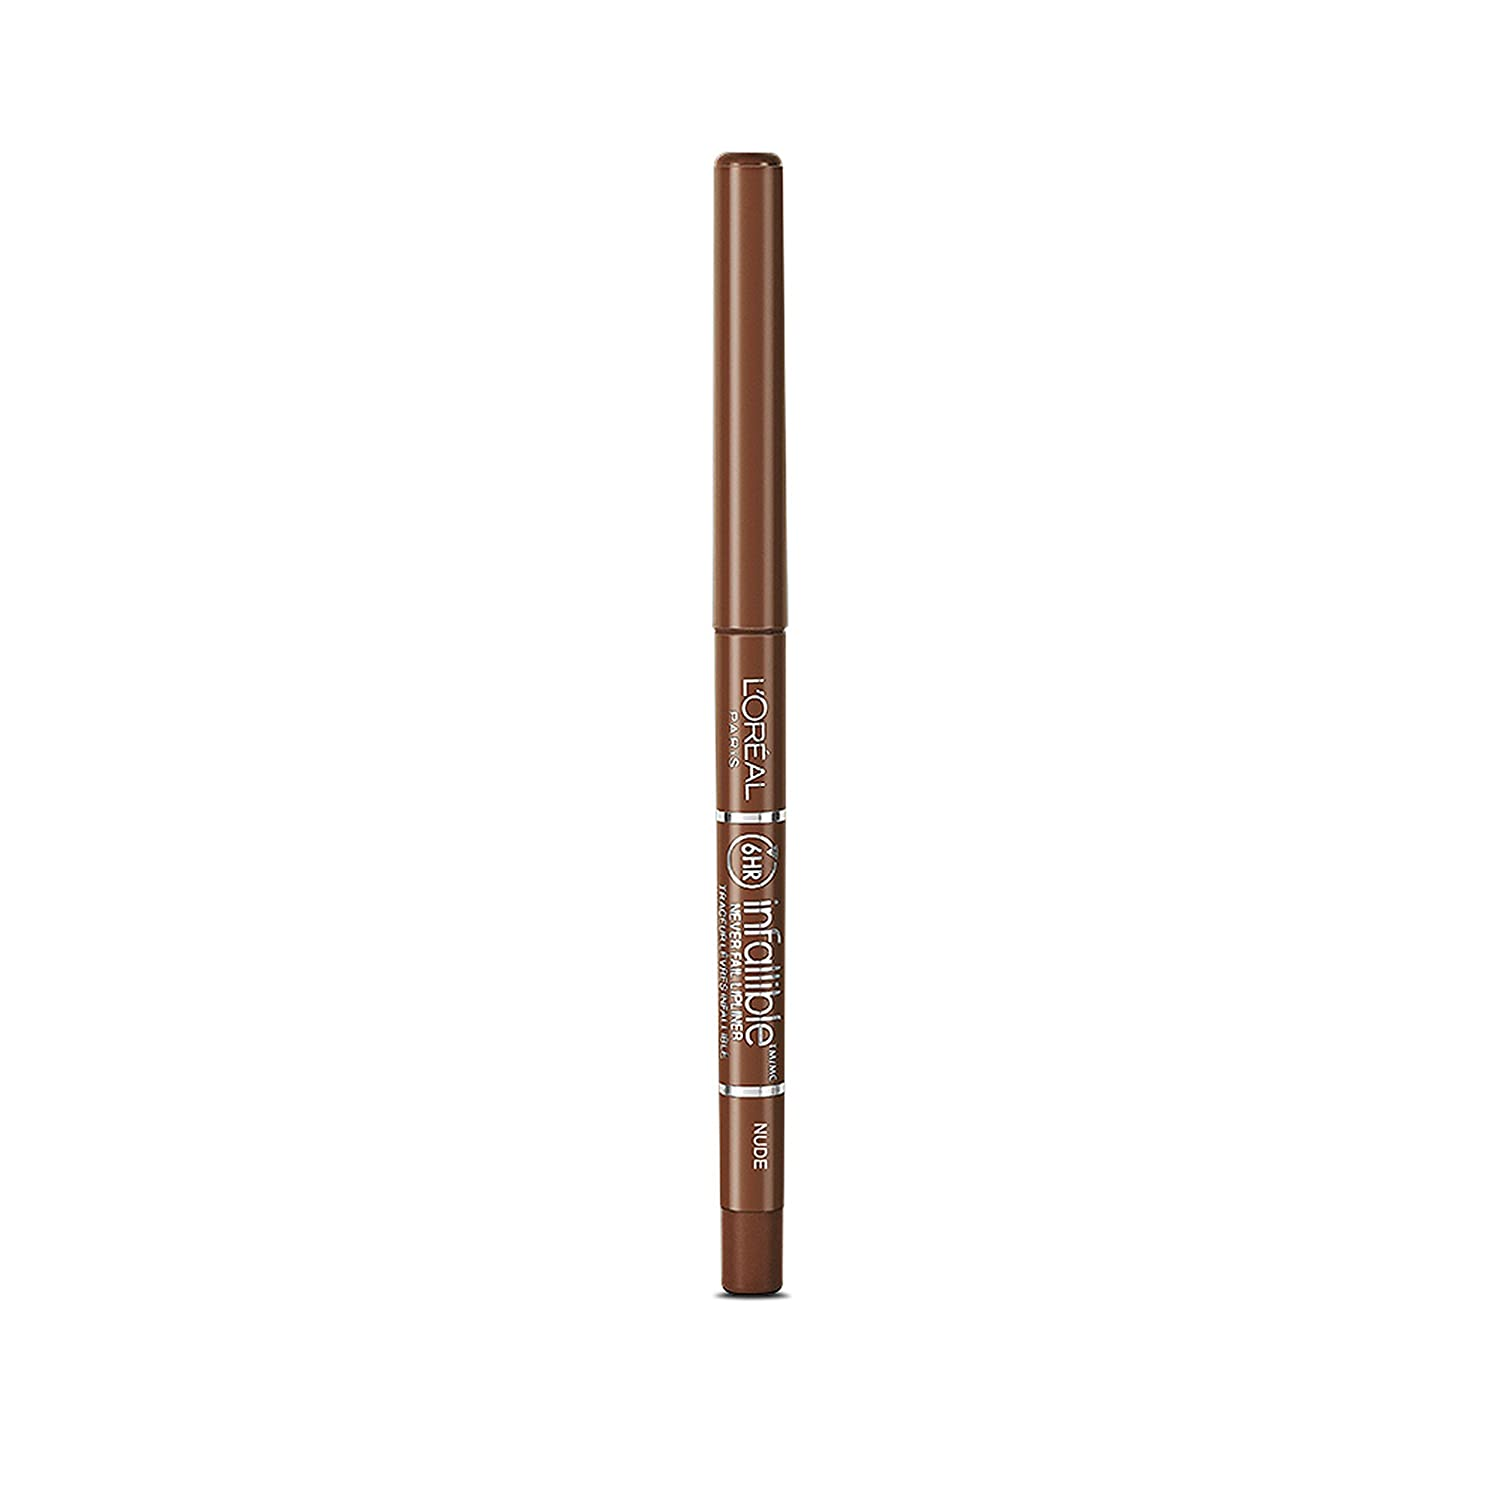 L'Oréal Paris Colour Riche Never Fail Lip Liner, Nude, 0.009 oz.